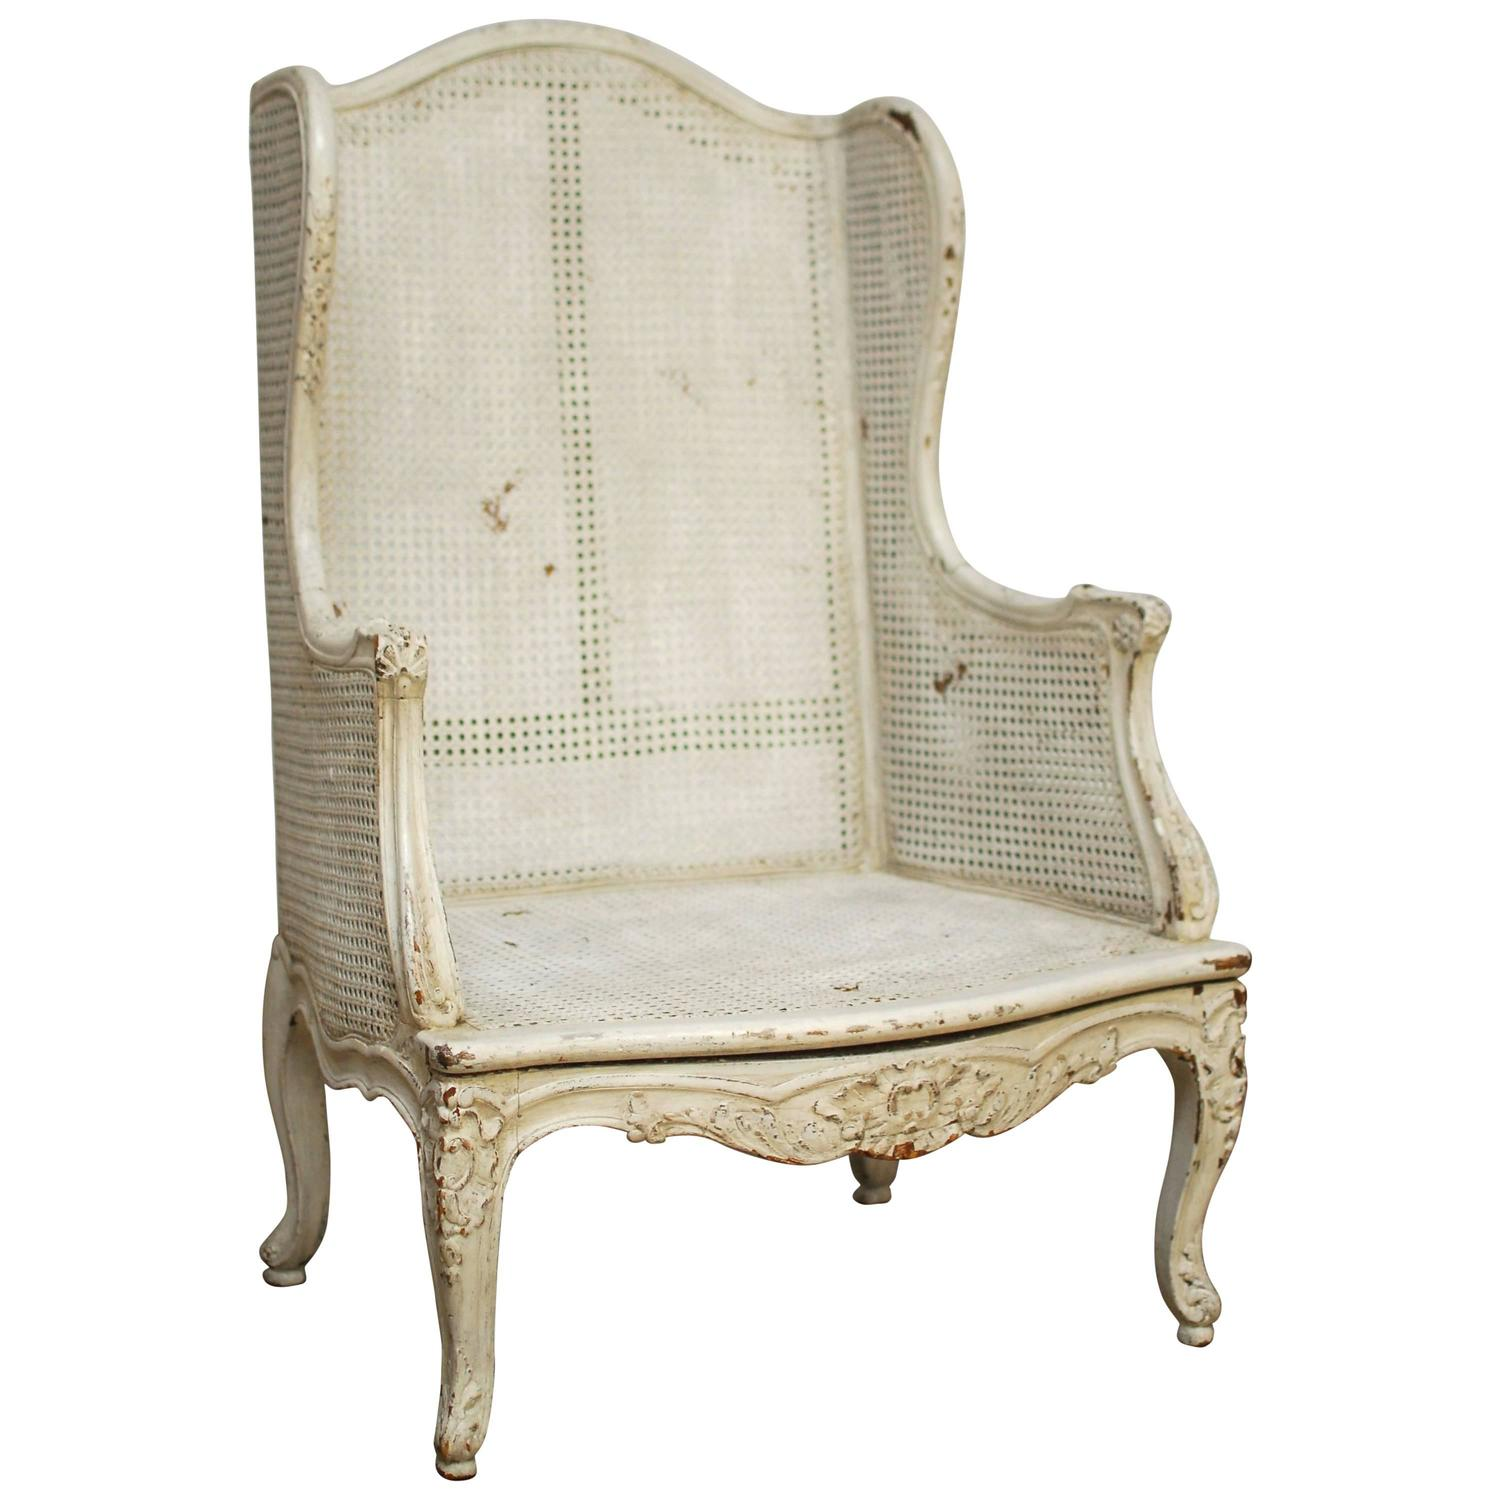 bergere chairs for sale swing chair cane louis xv wingback at 1stdibs